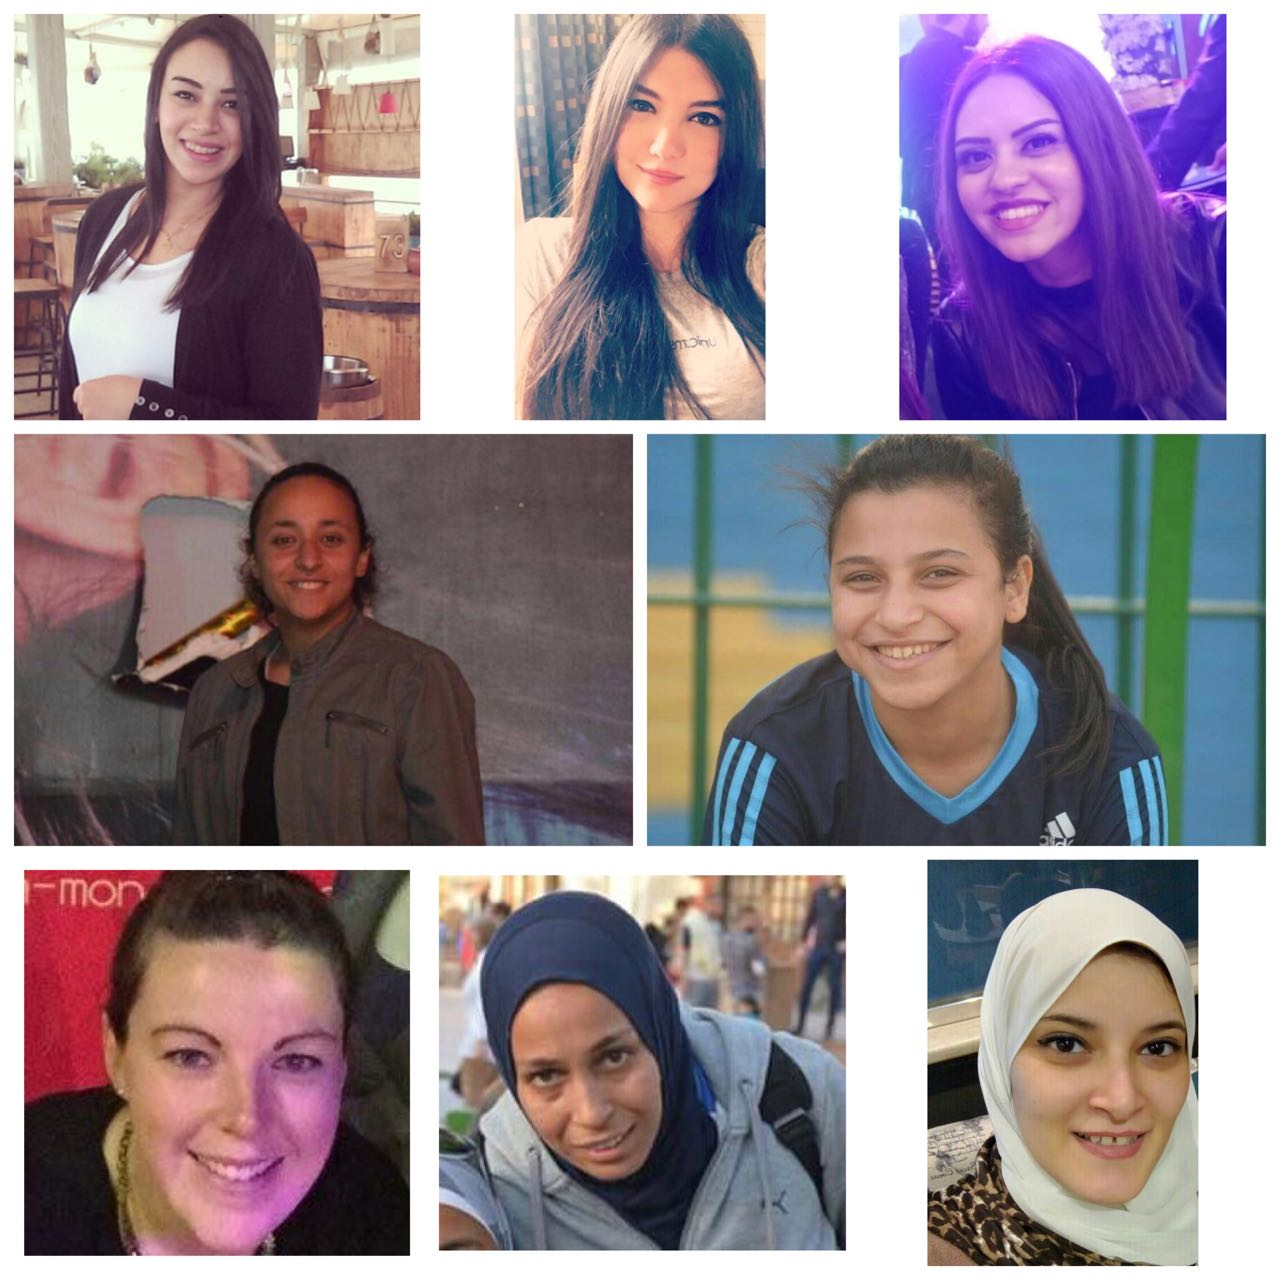 Please welcome this team who is joining us from Egypt!